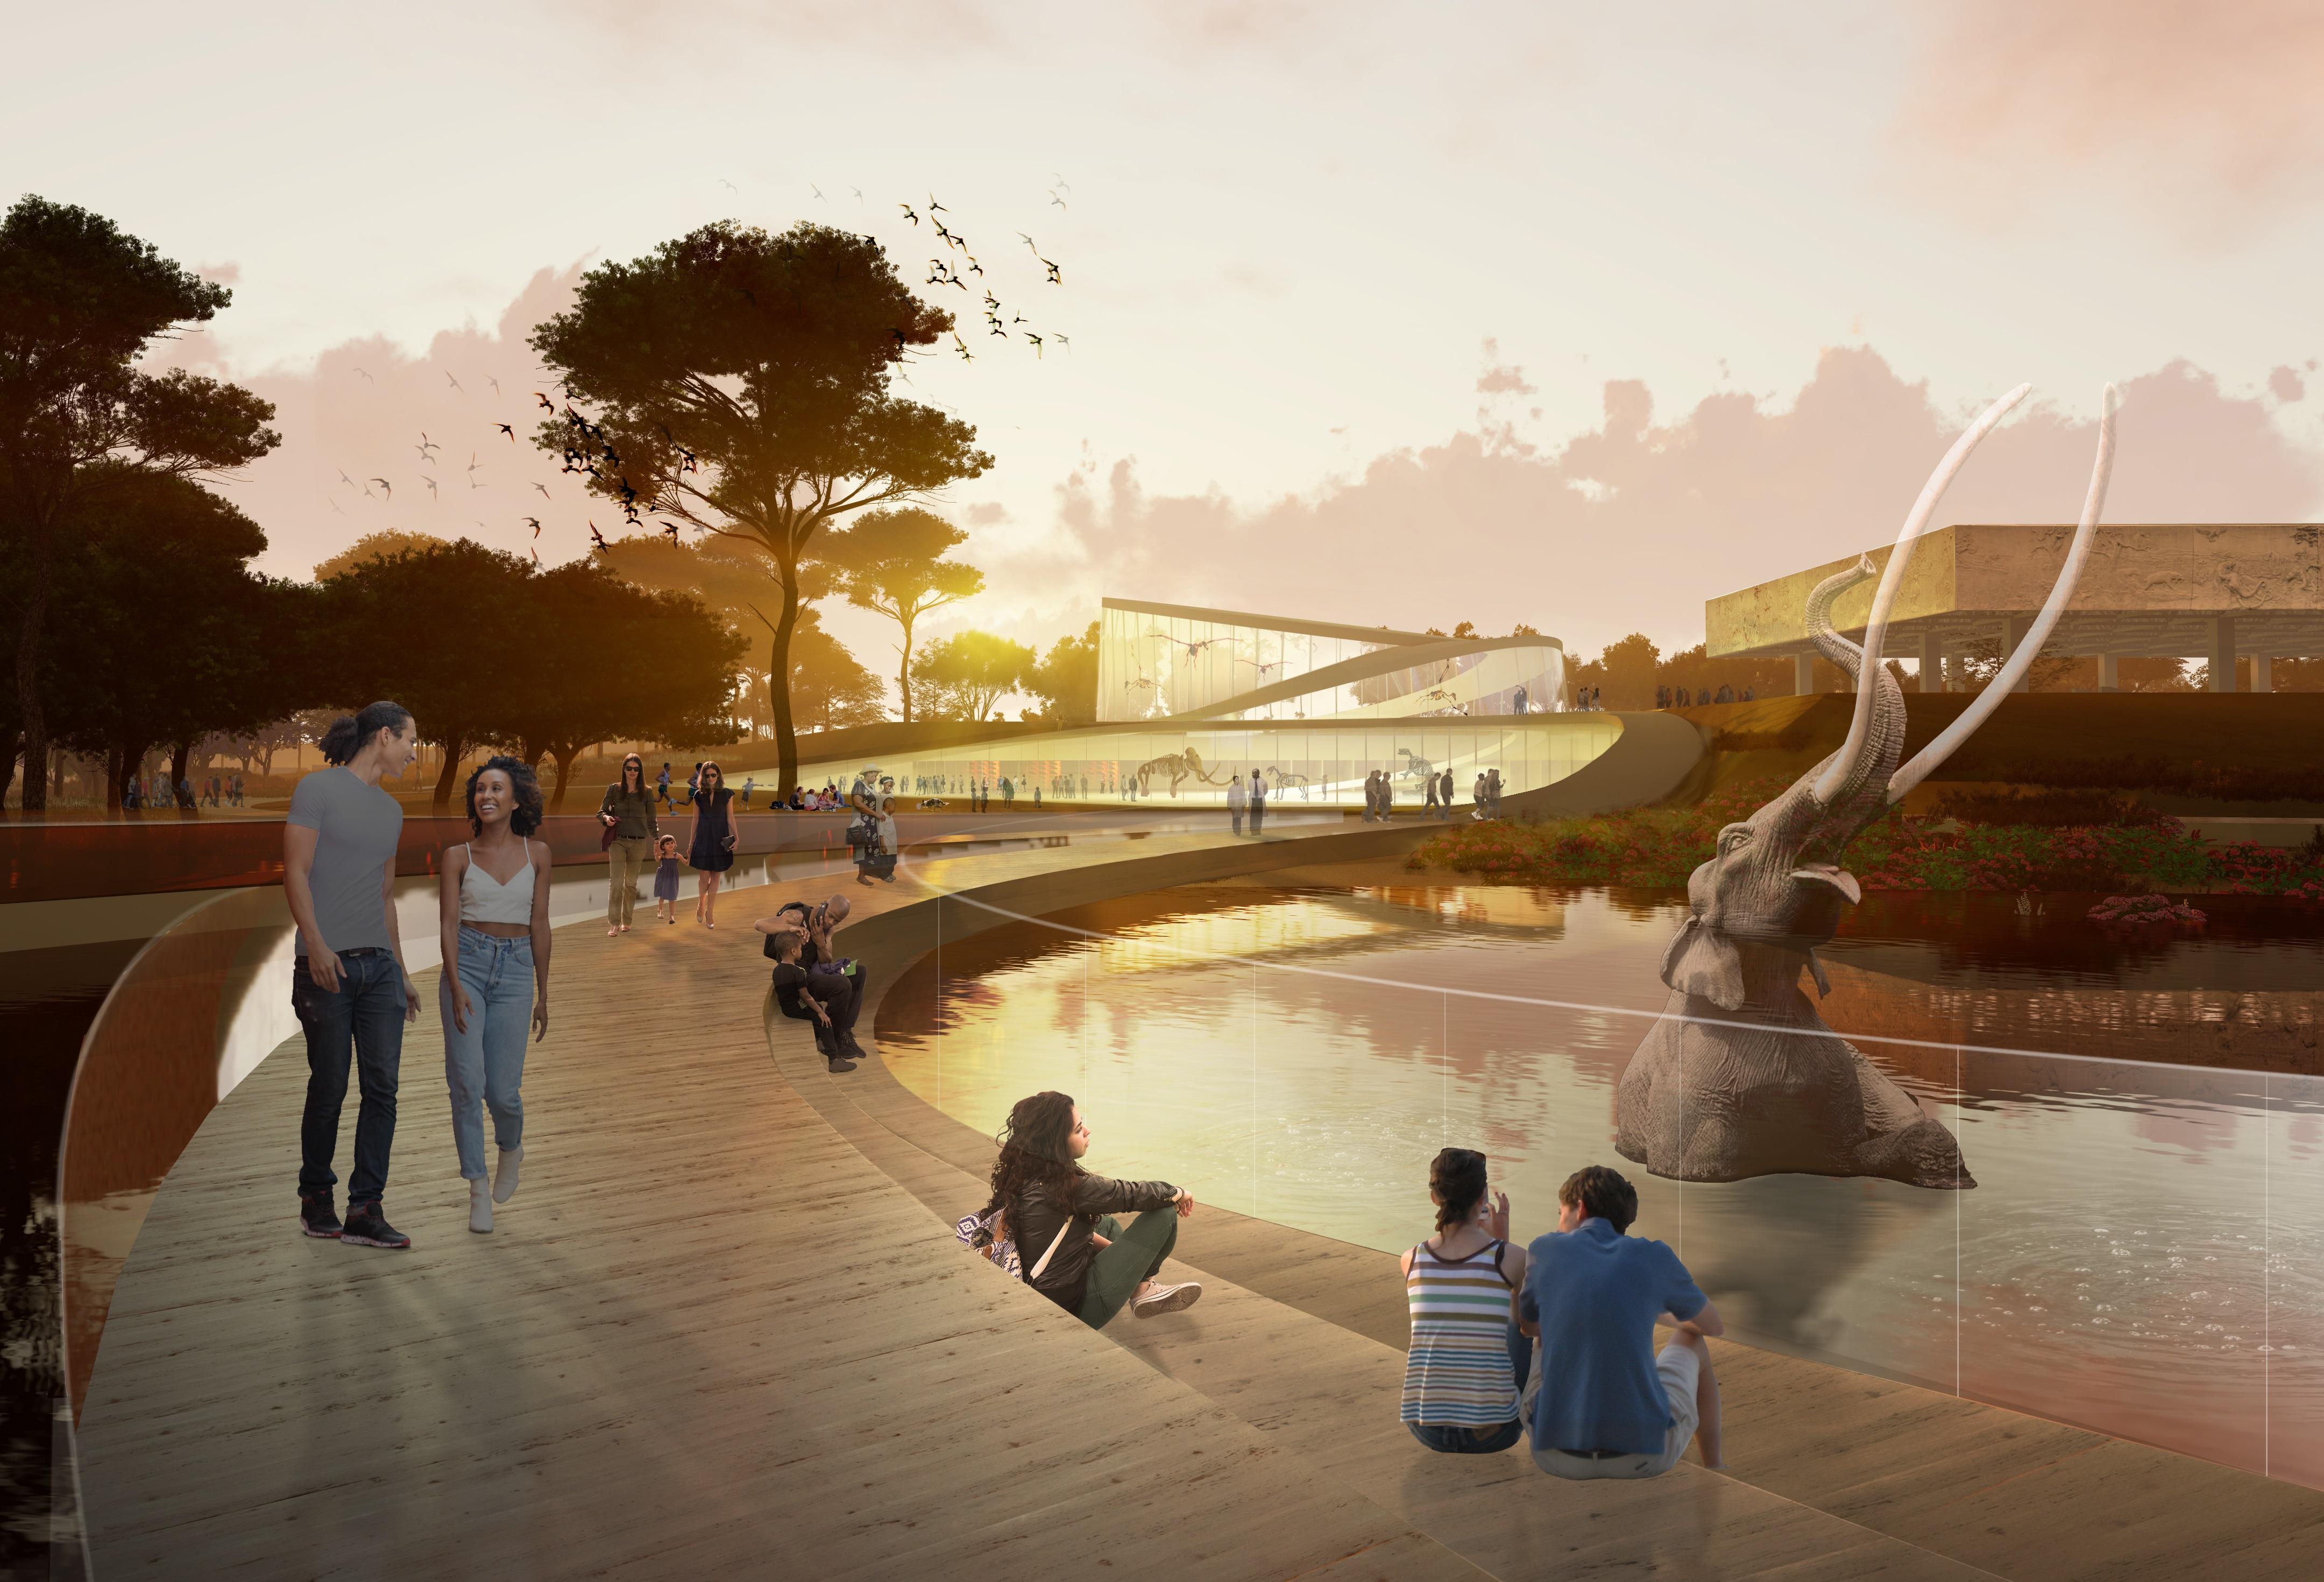 A rendering of a pathway extending over the tar pits with new low-rise buildings visible in the background.